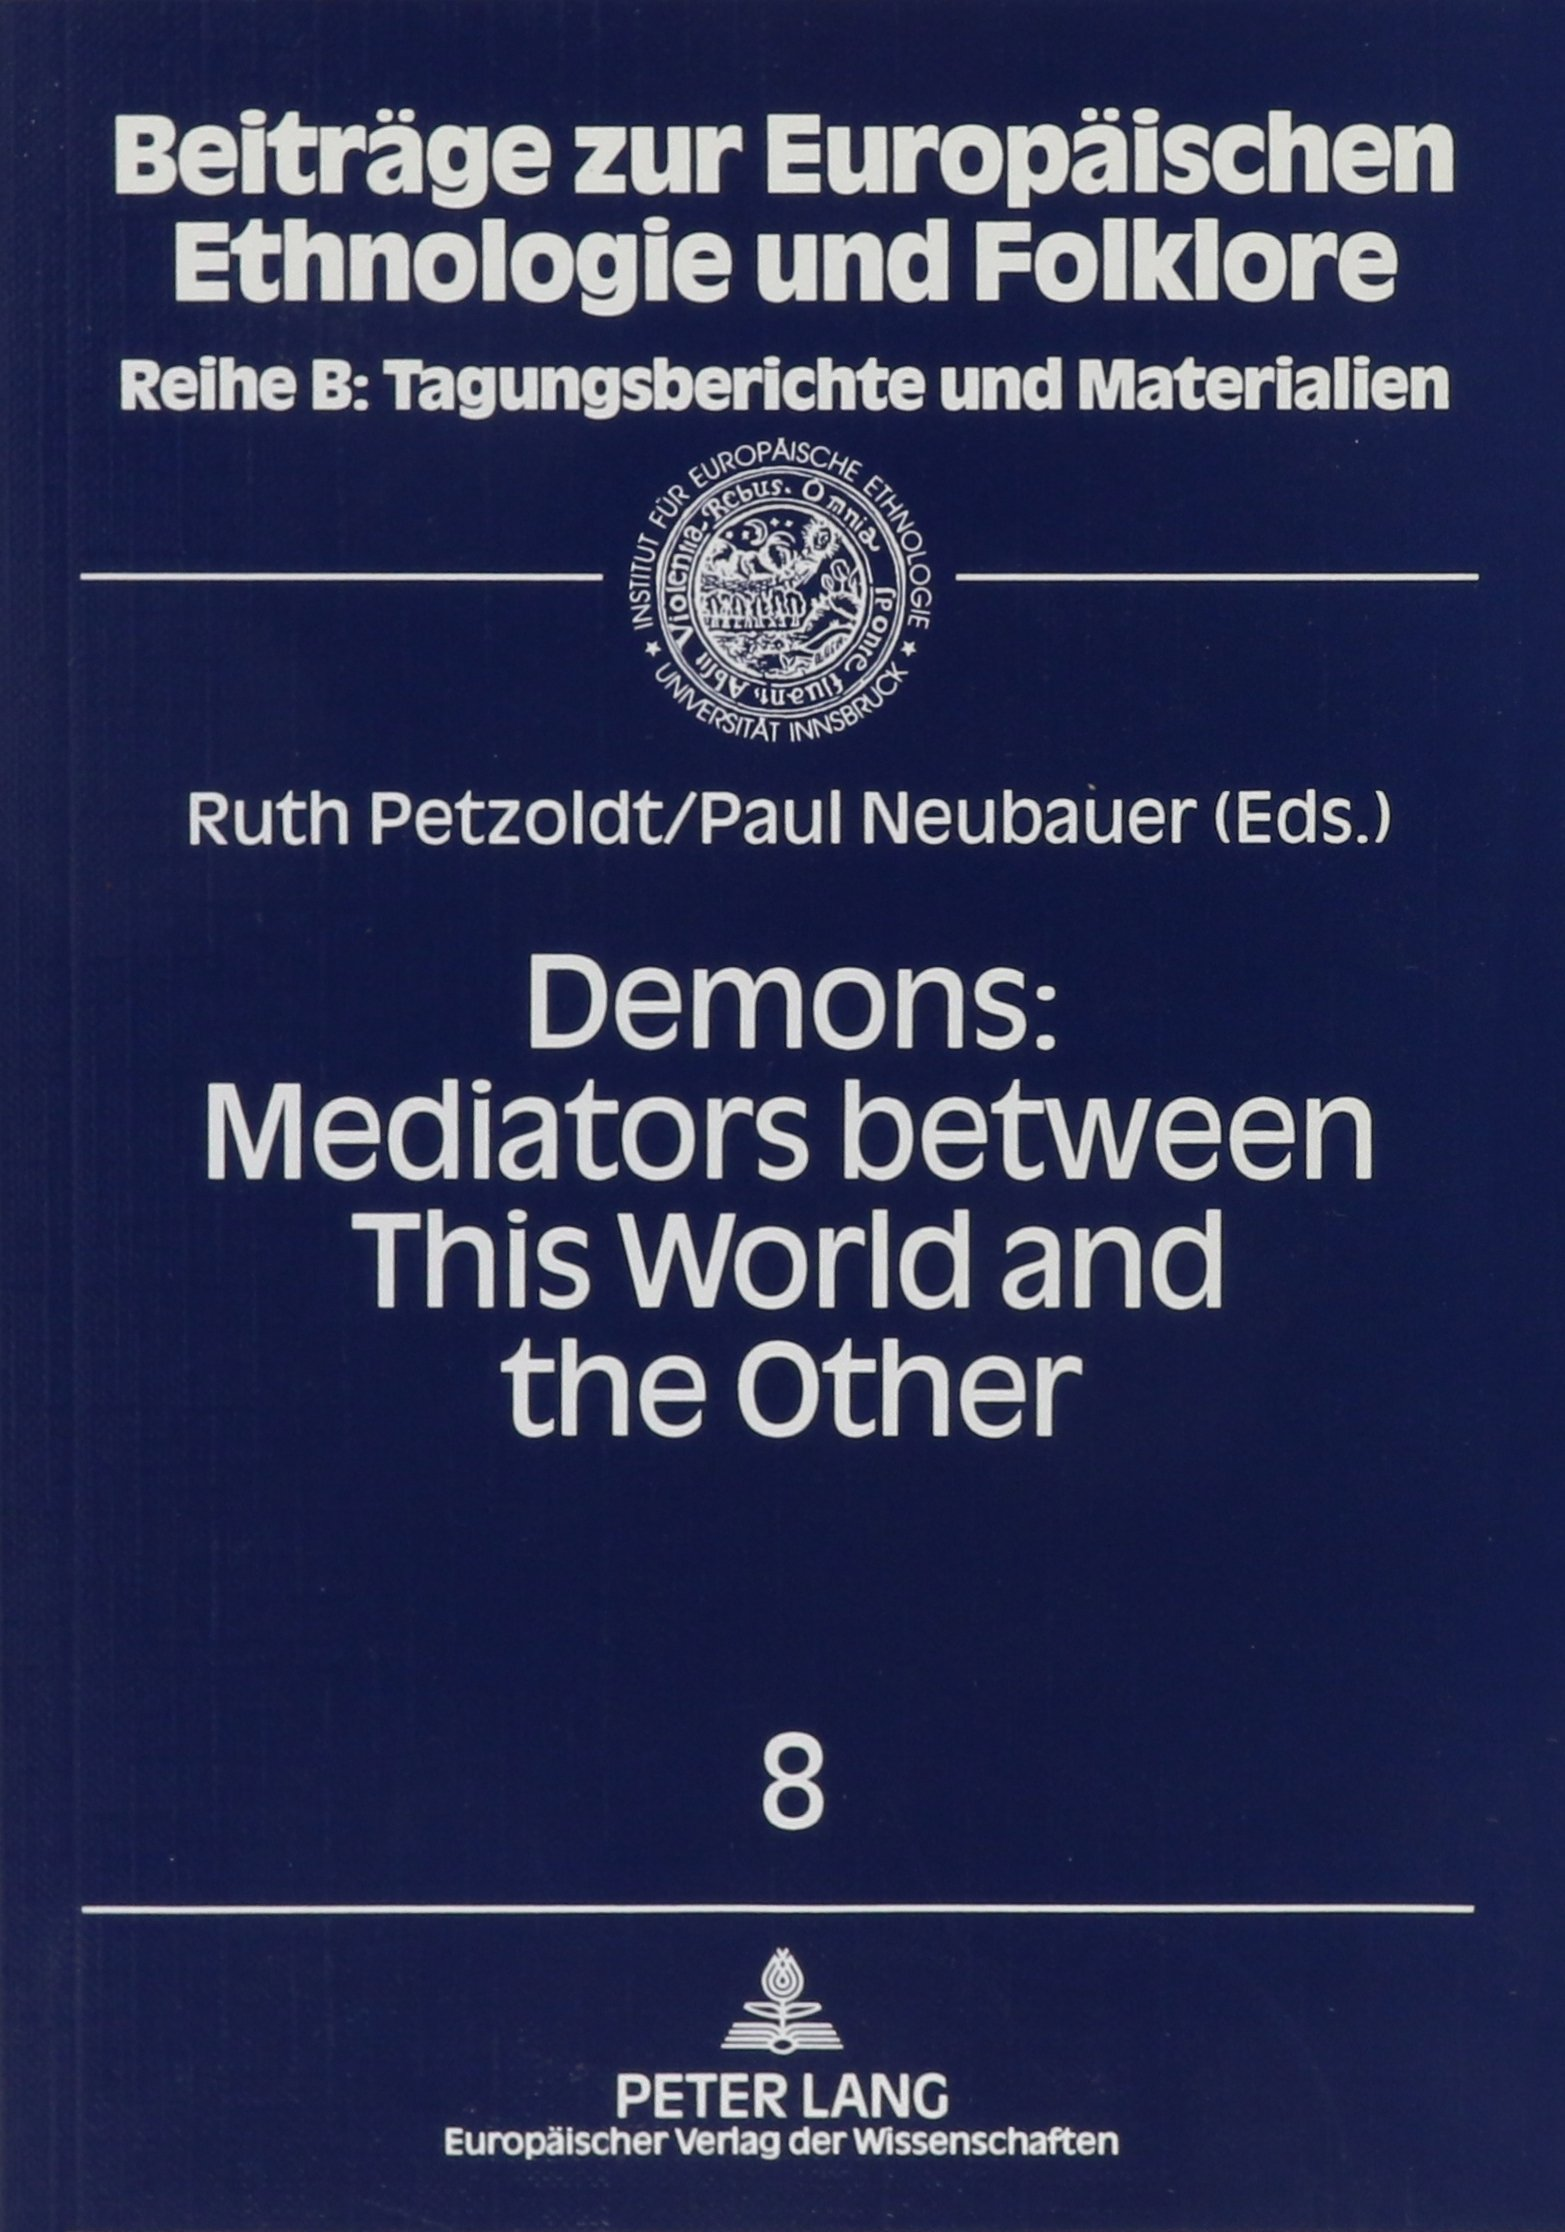 Demons: Mediators Between This World and the Other: Essays on Demonic Beings from the Middle Ages to the Present (Europaische Hochschulschriften. Reihe XIV, Angelsachsische S) by Brand: Peter Lang Pub Inc